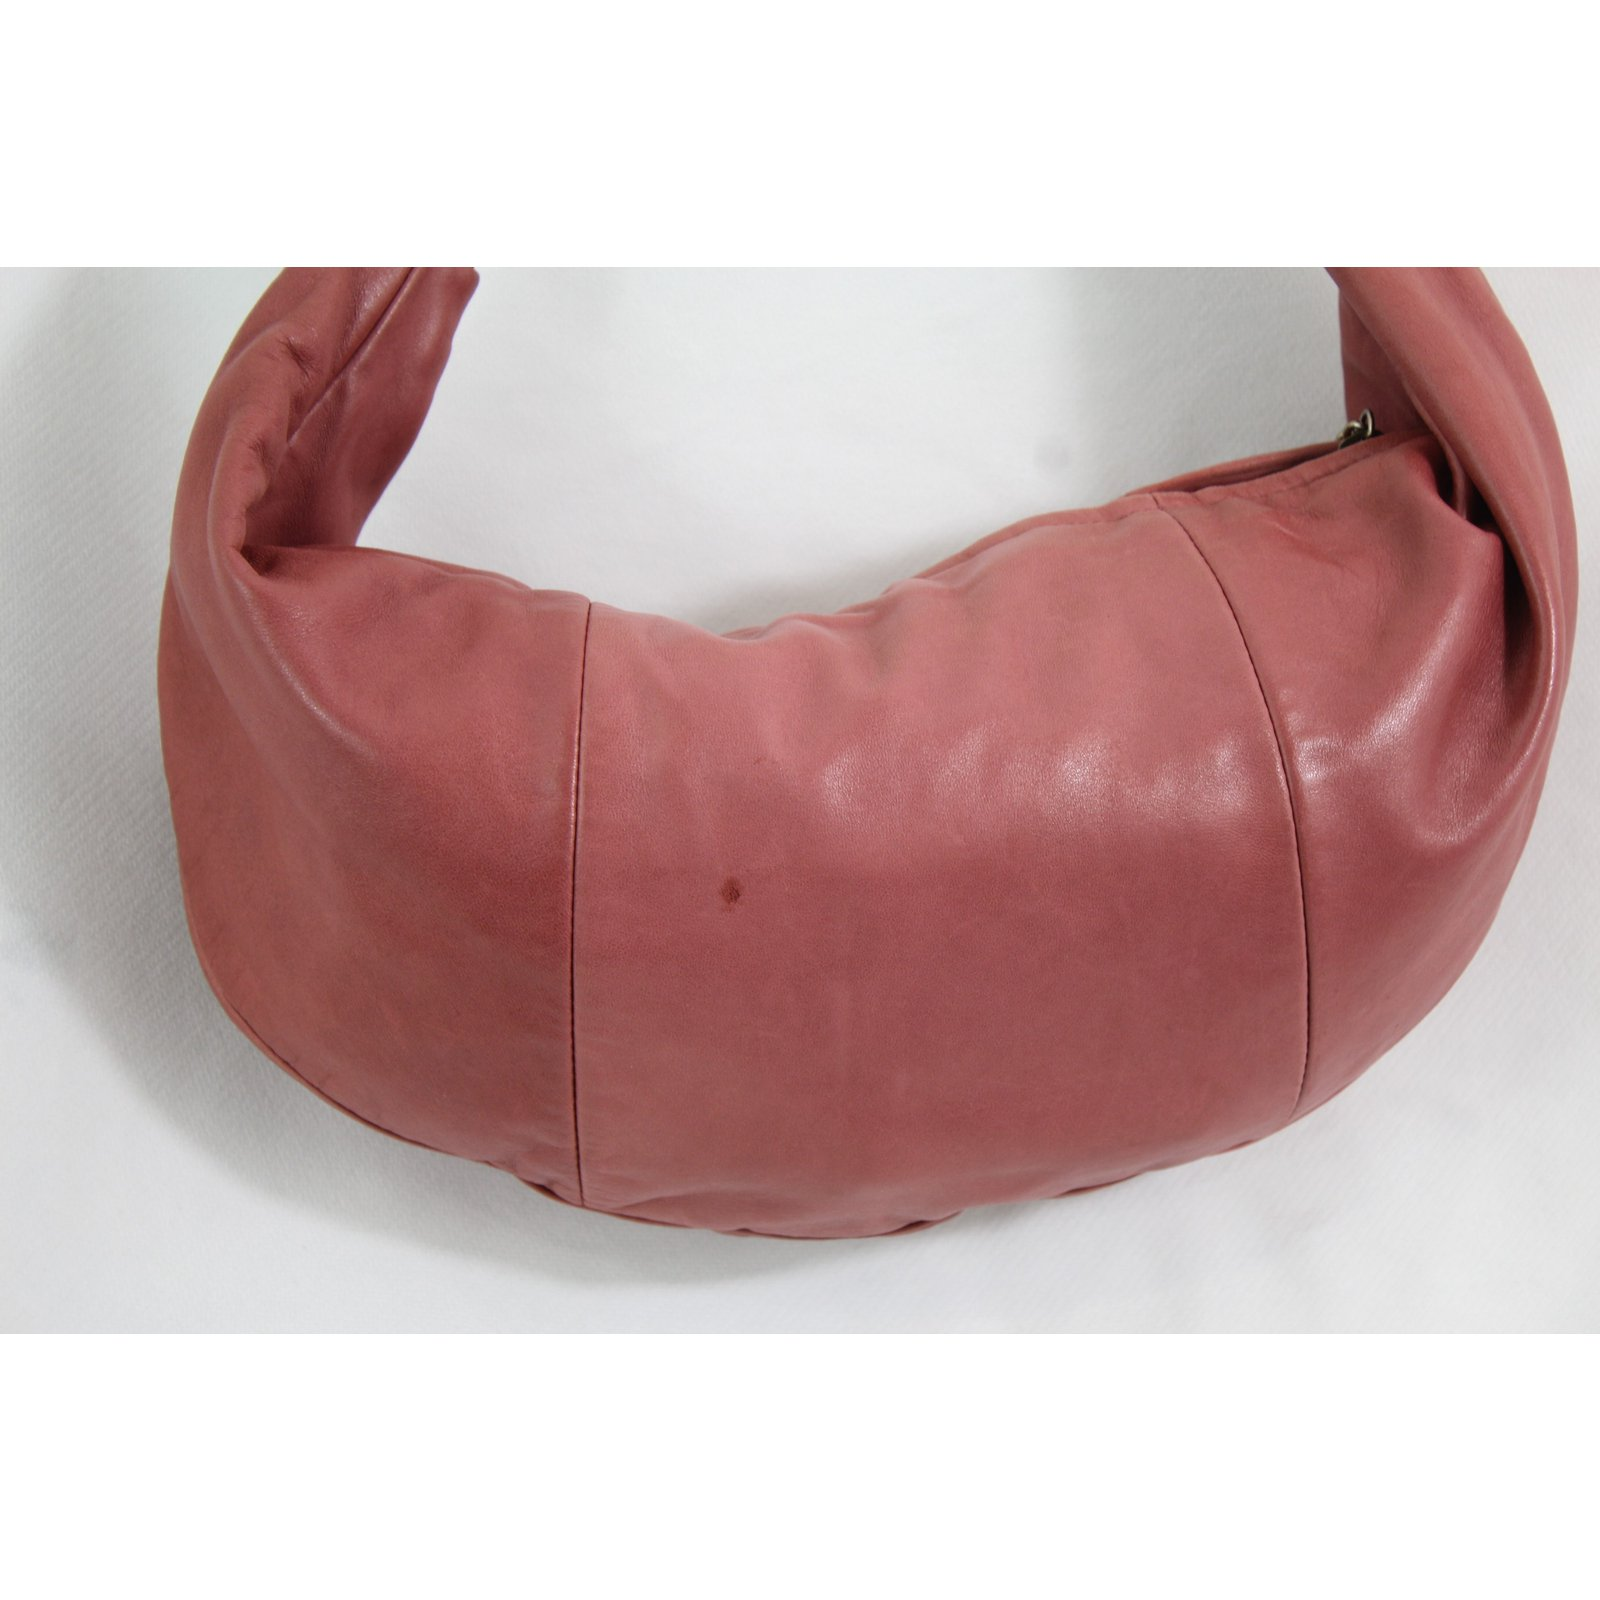 Facebook · Pin This. Chanel Handbags Handbags Leather Pink ref.61960 e788803cbce20